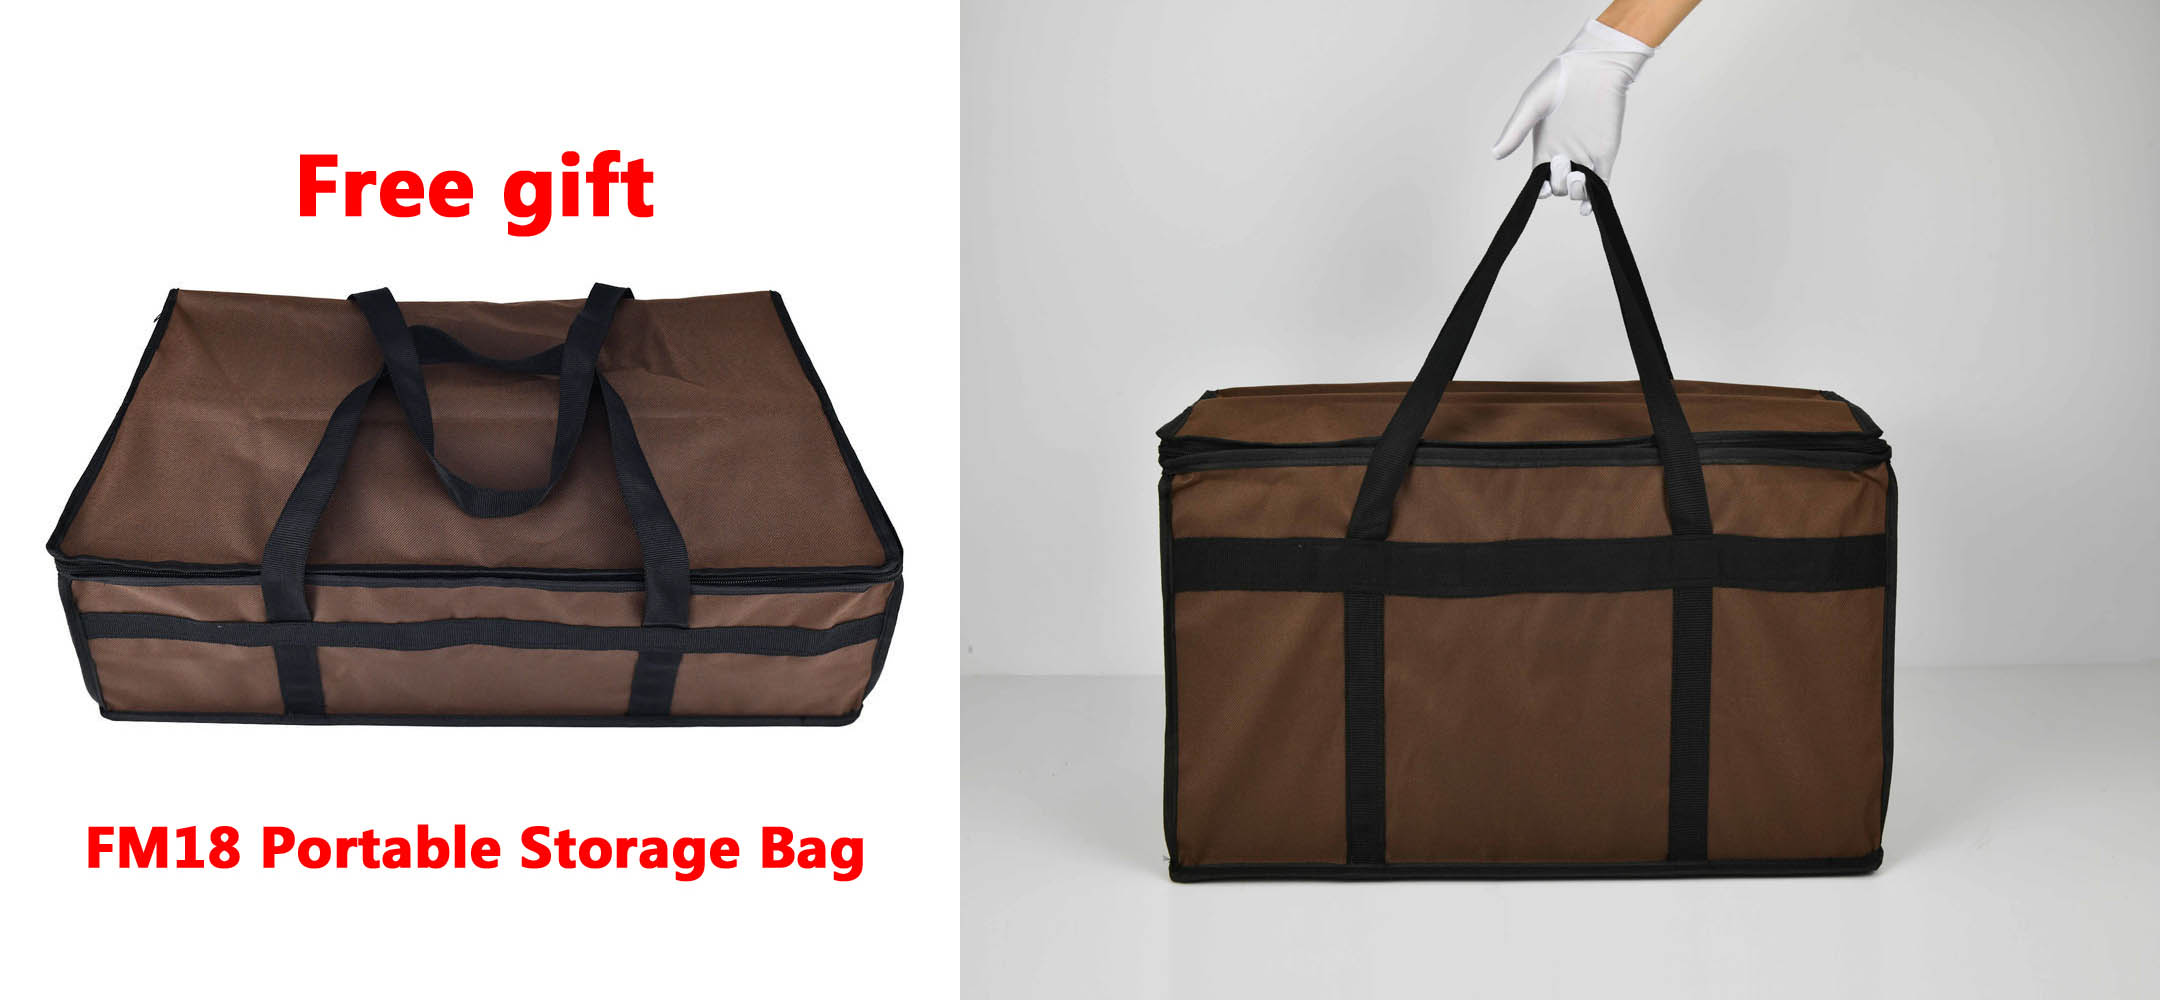 FM18 Portable Storage Bag